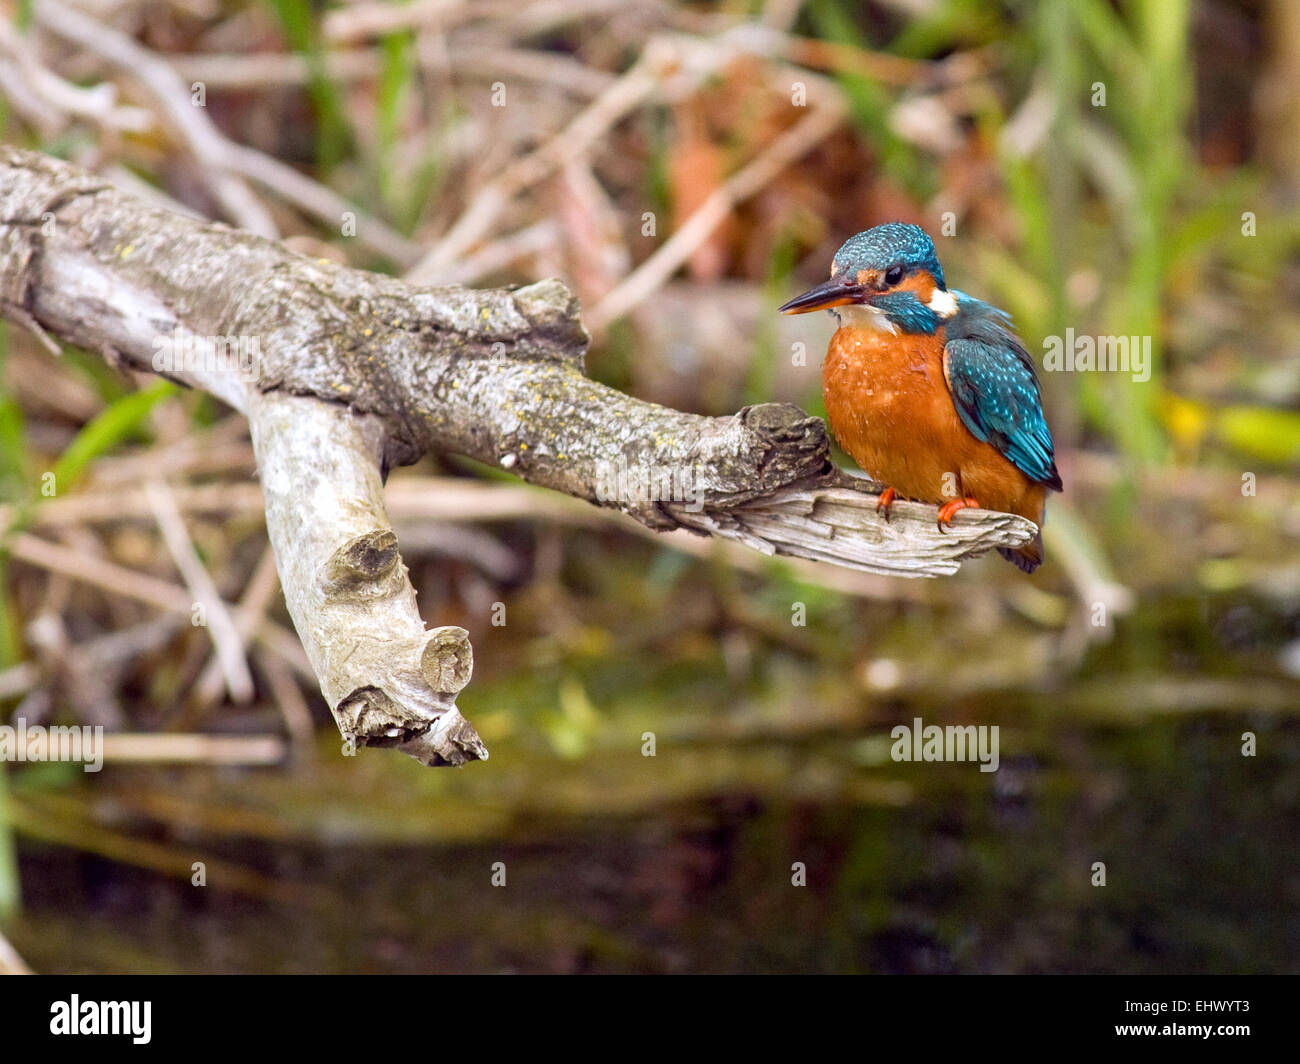 Kingfisher (Alcedo atthis) at a river in Ireland. Stock Photo